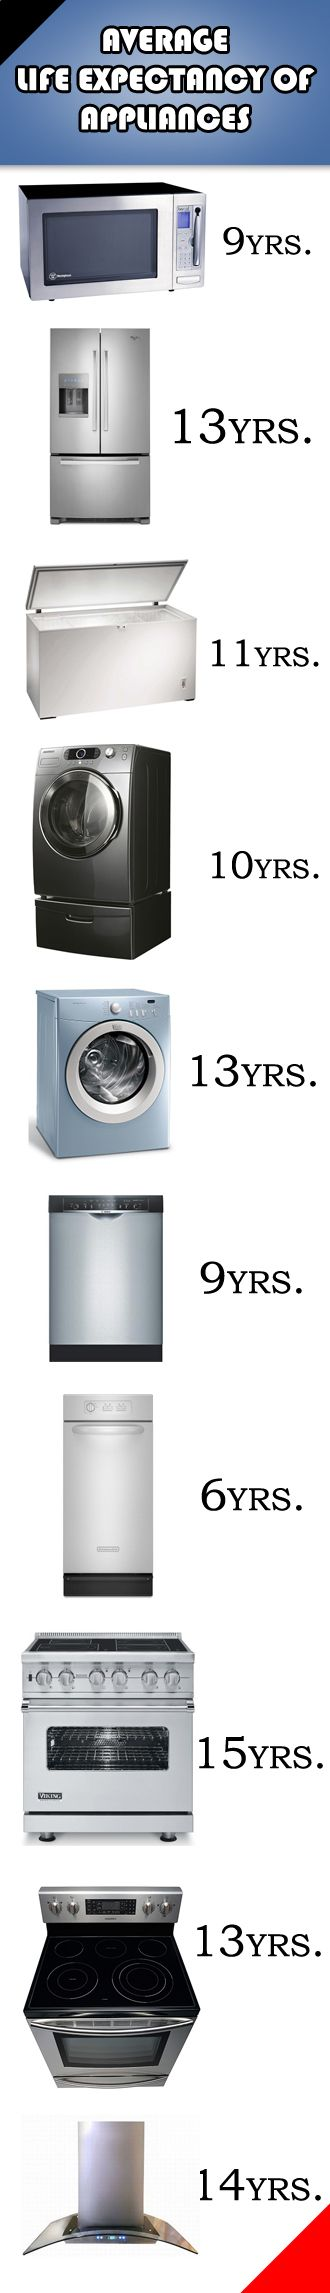 Life Expectency of a home appliance like refrigerator, microwave, washer, dryer....